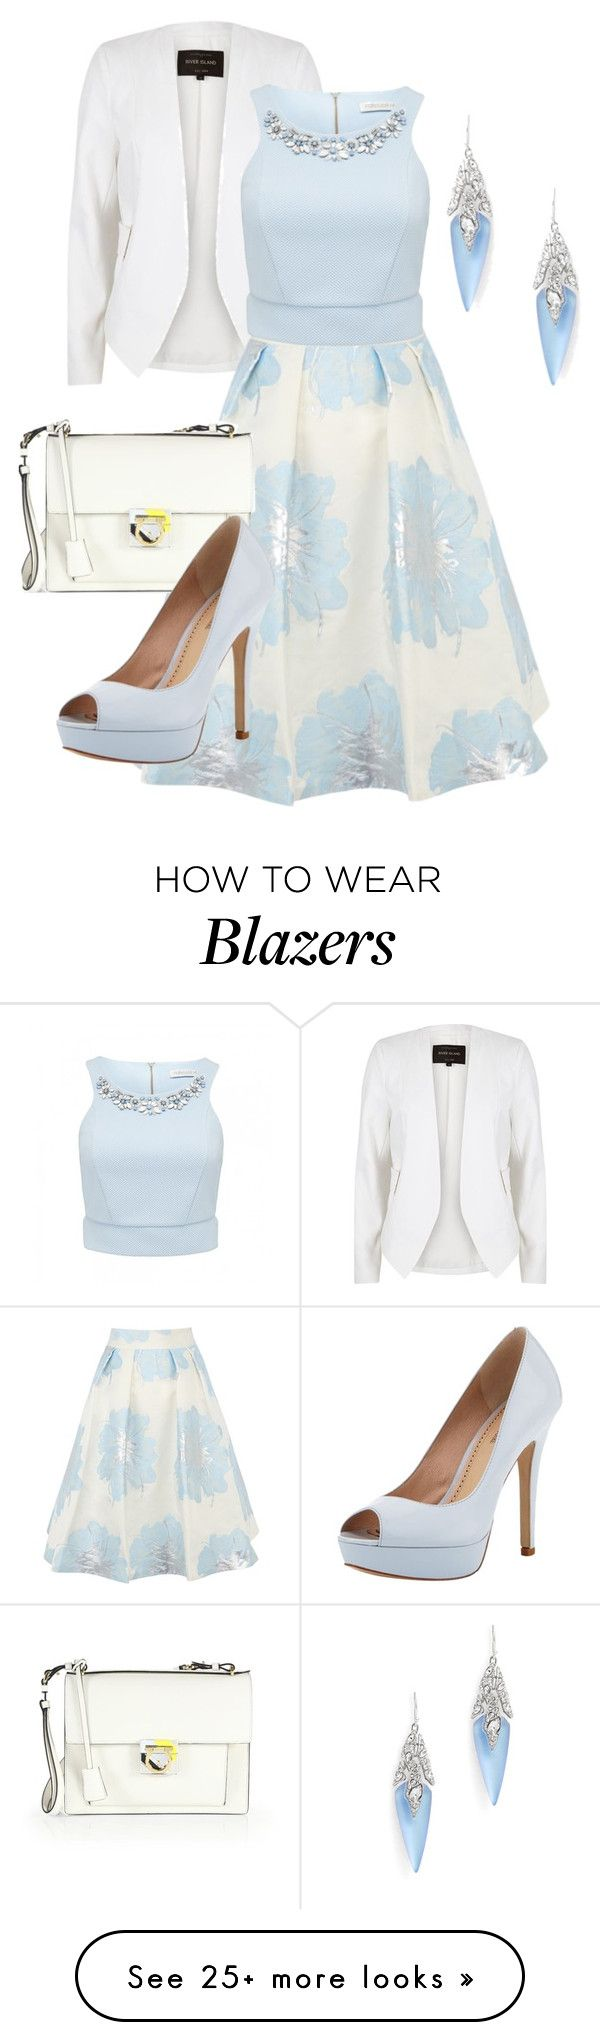 """Untitled #991"" by srlangley on Polyvore featuring River Island, Coast, Alexis Bittar, Forever New, Salvatore Ferragamo and Pour La Victoire"